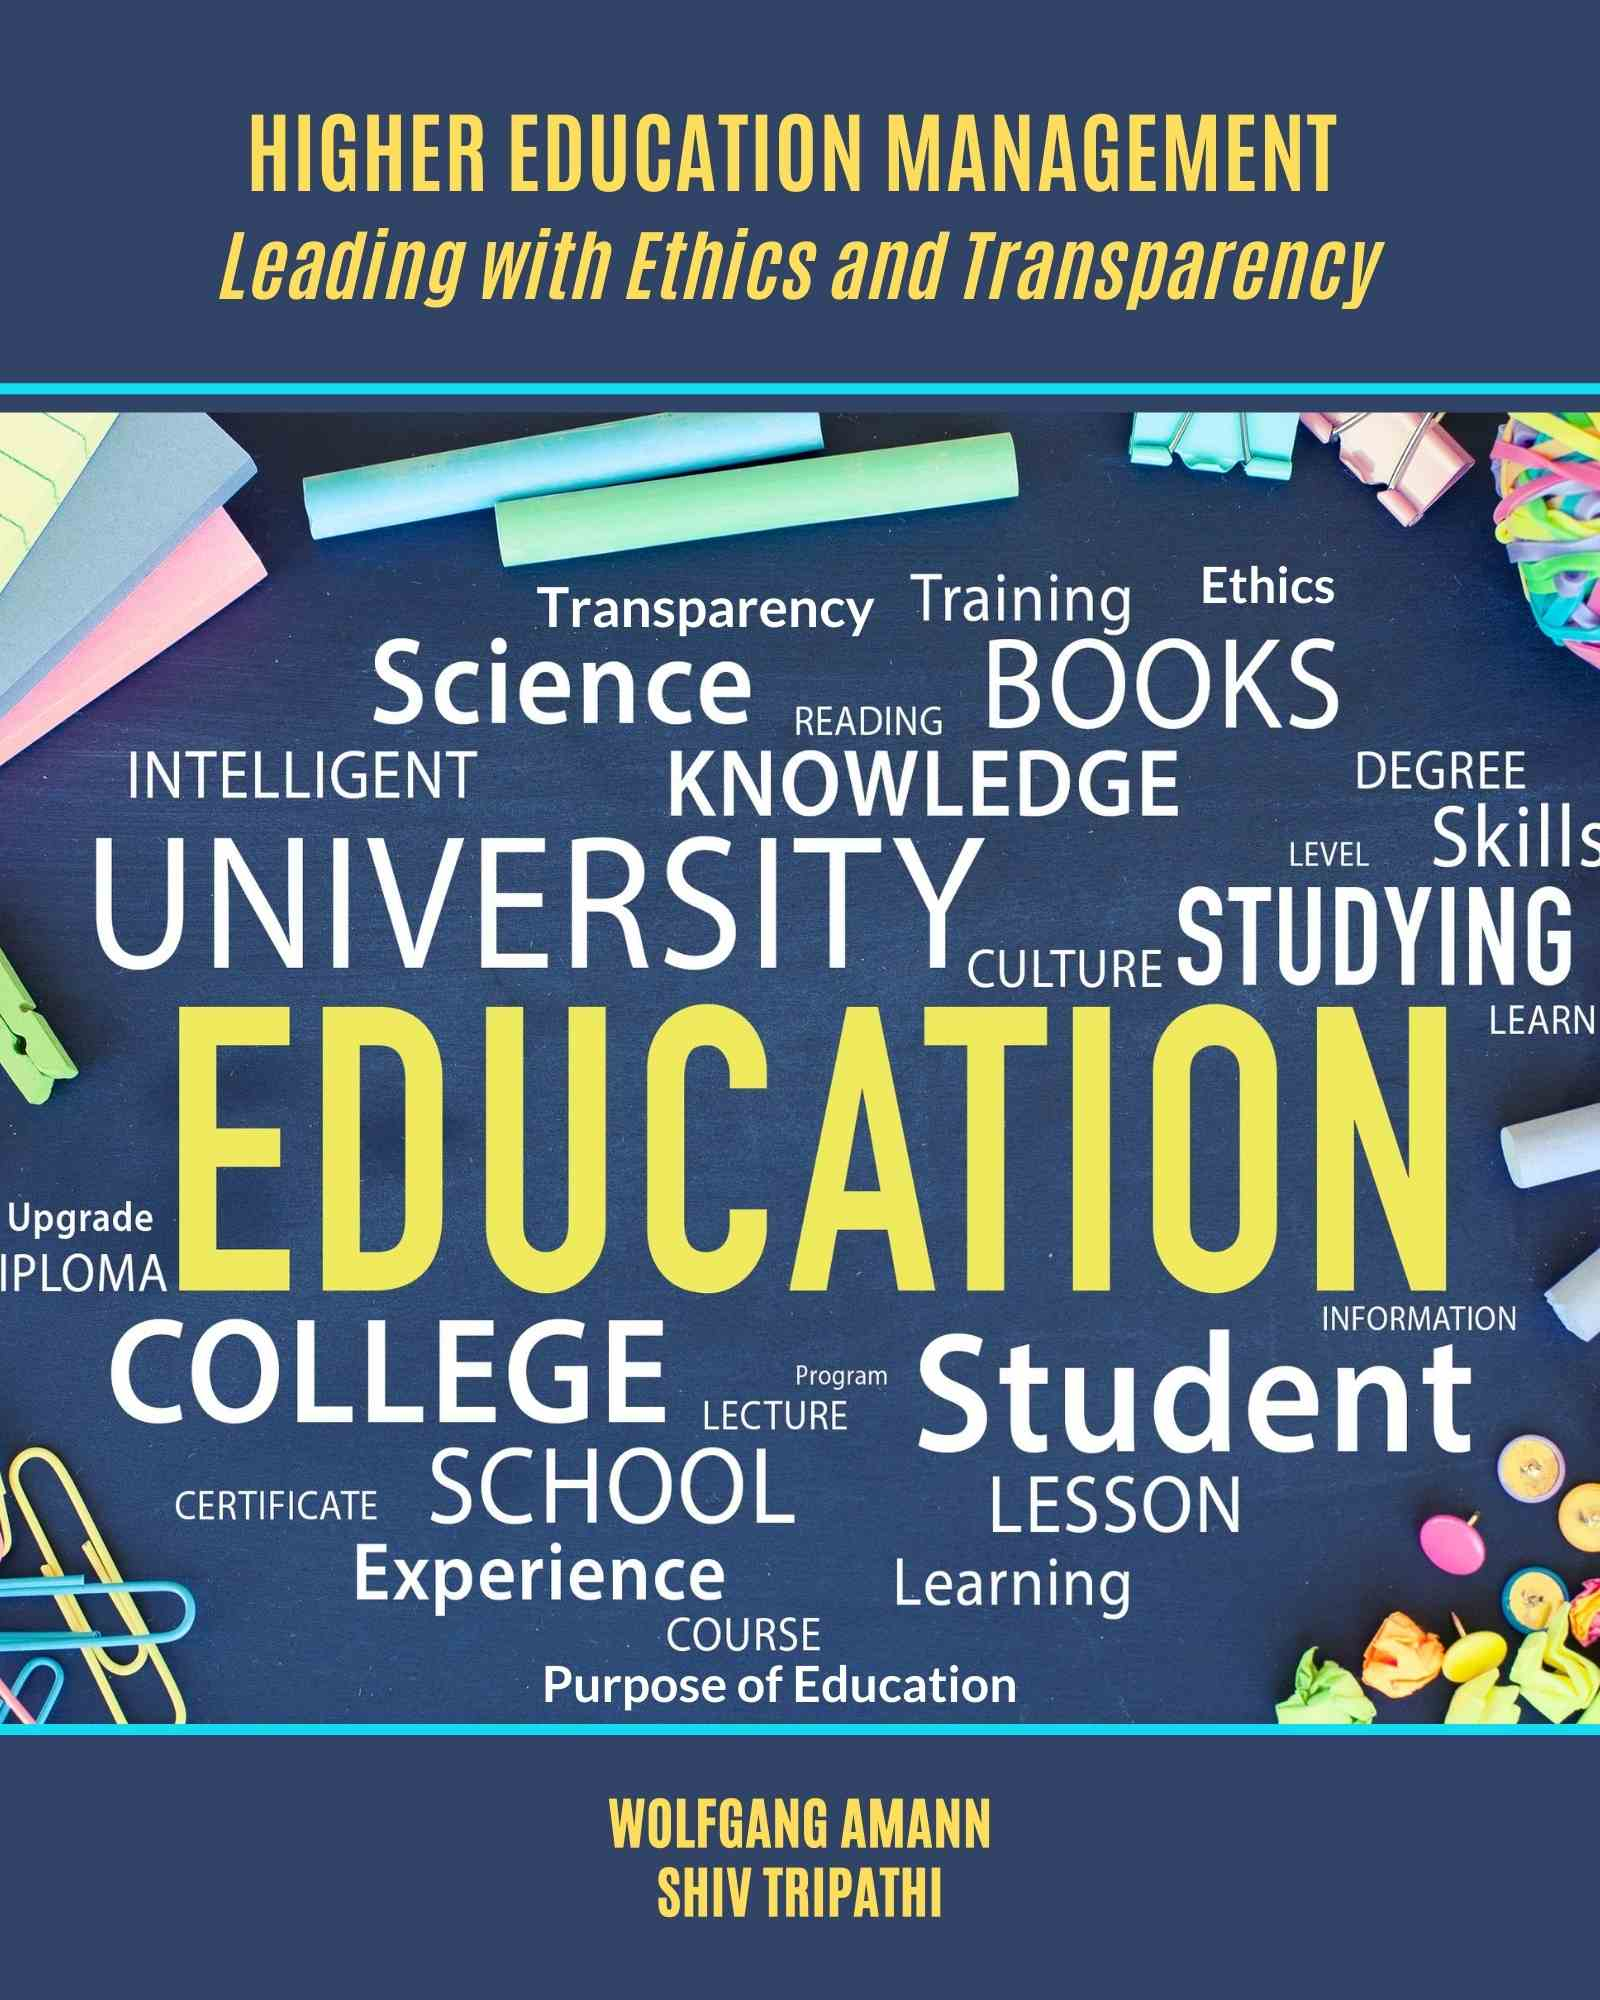 Higher Education Management: Leading with Ethics and Transparency